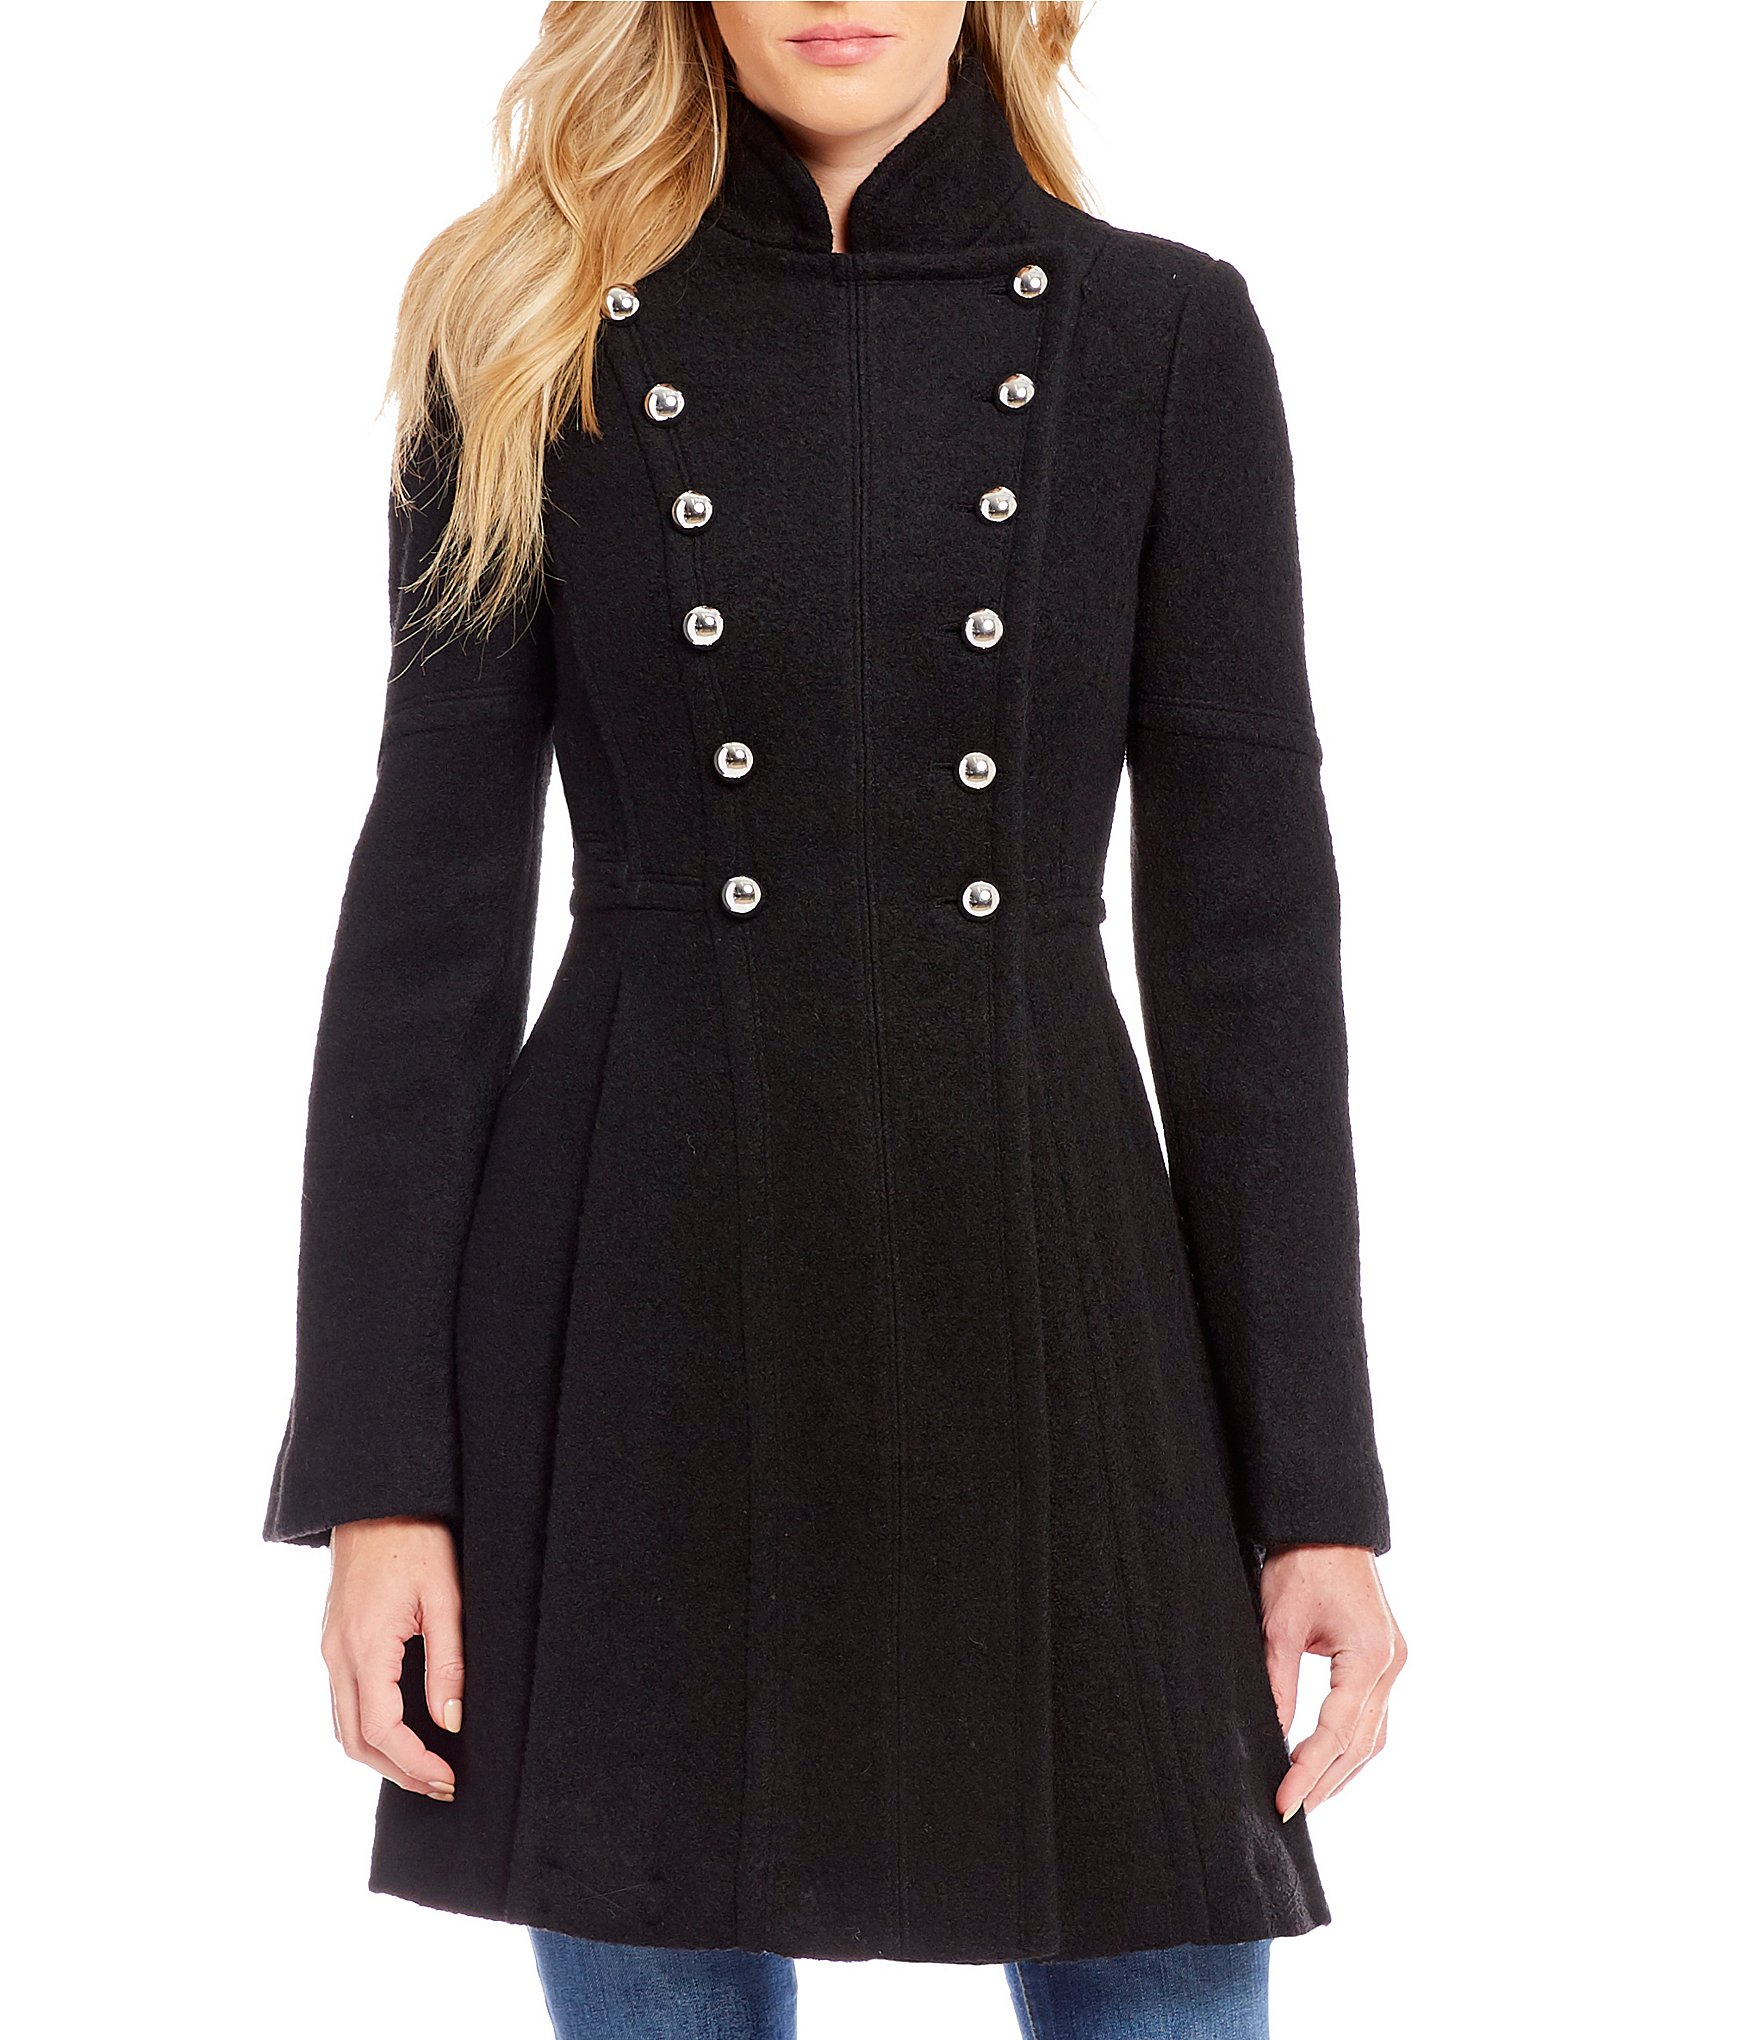 Ladies Wool Blend Coats Han Coats